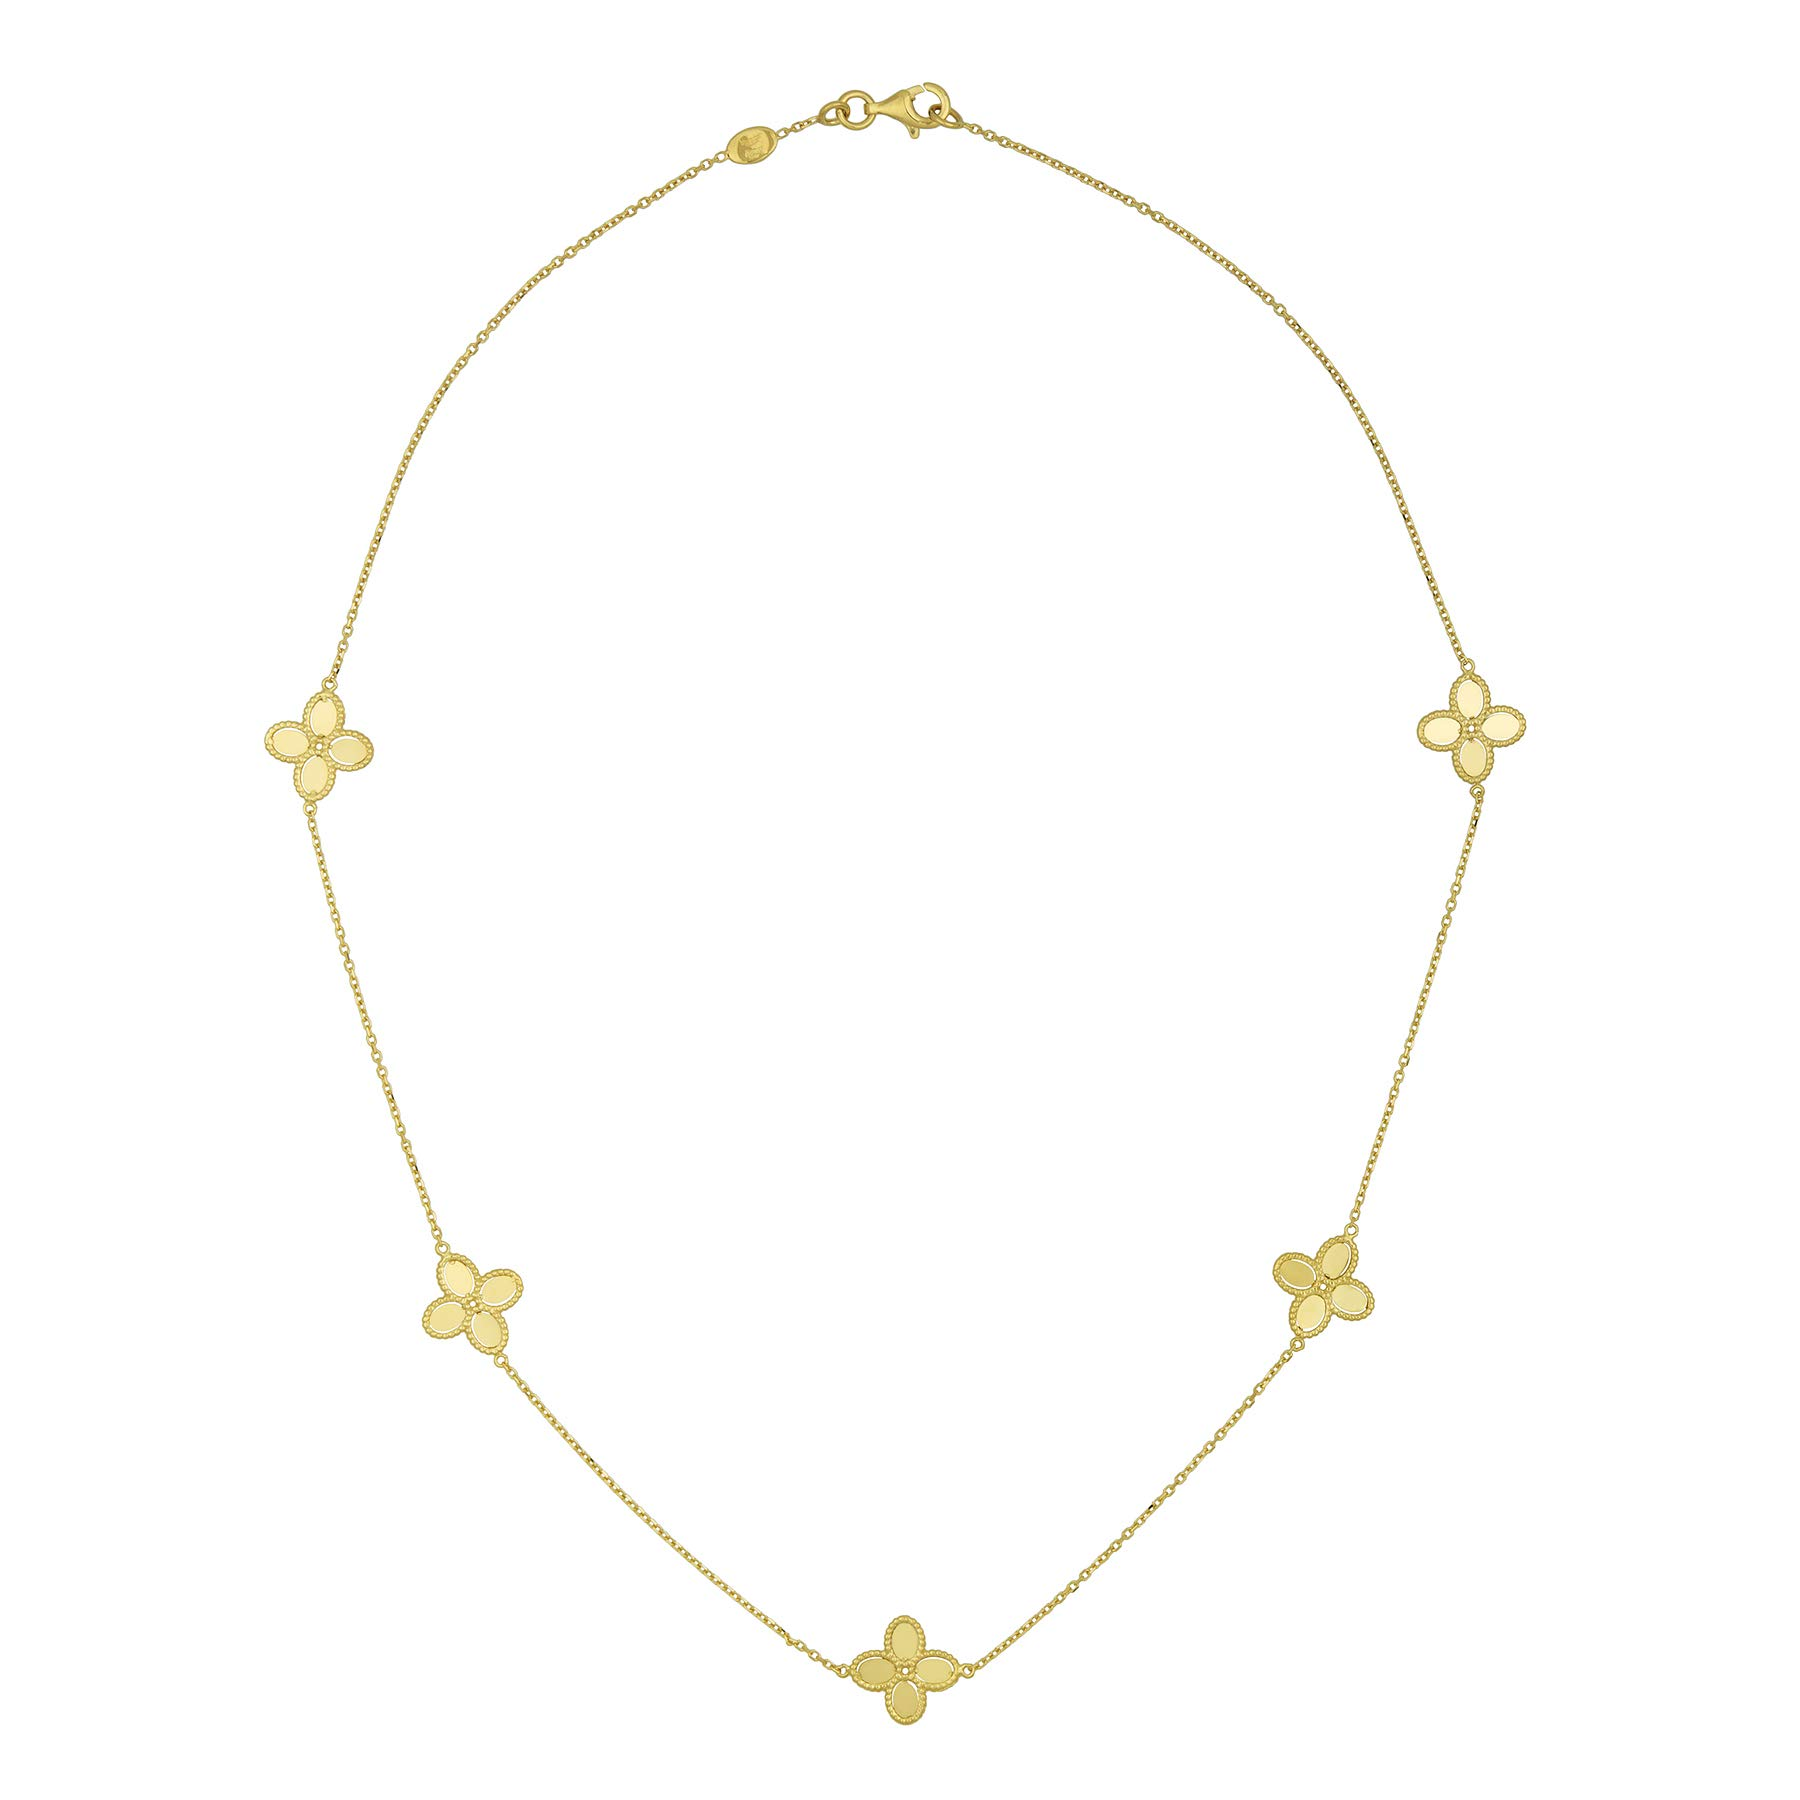 14k Italian Yellow Gold Four Leaf Clover Flower Station Necklace, 18 inches by Goldie Direct